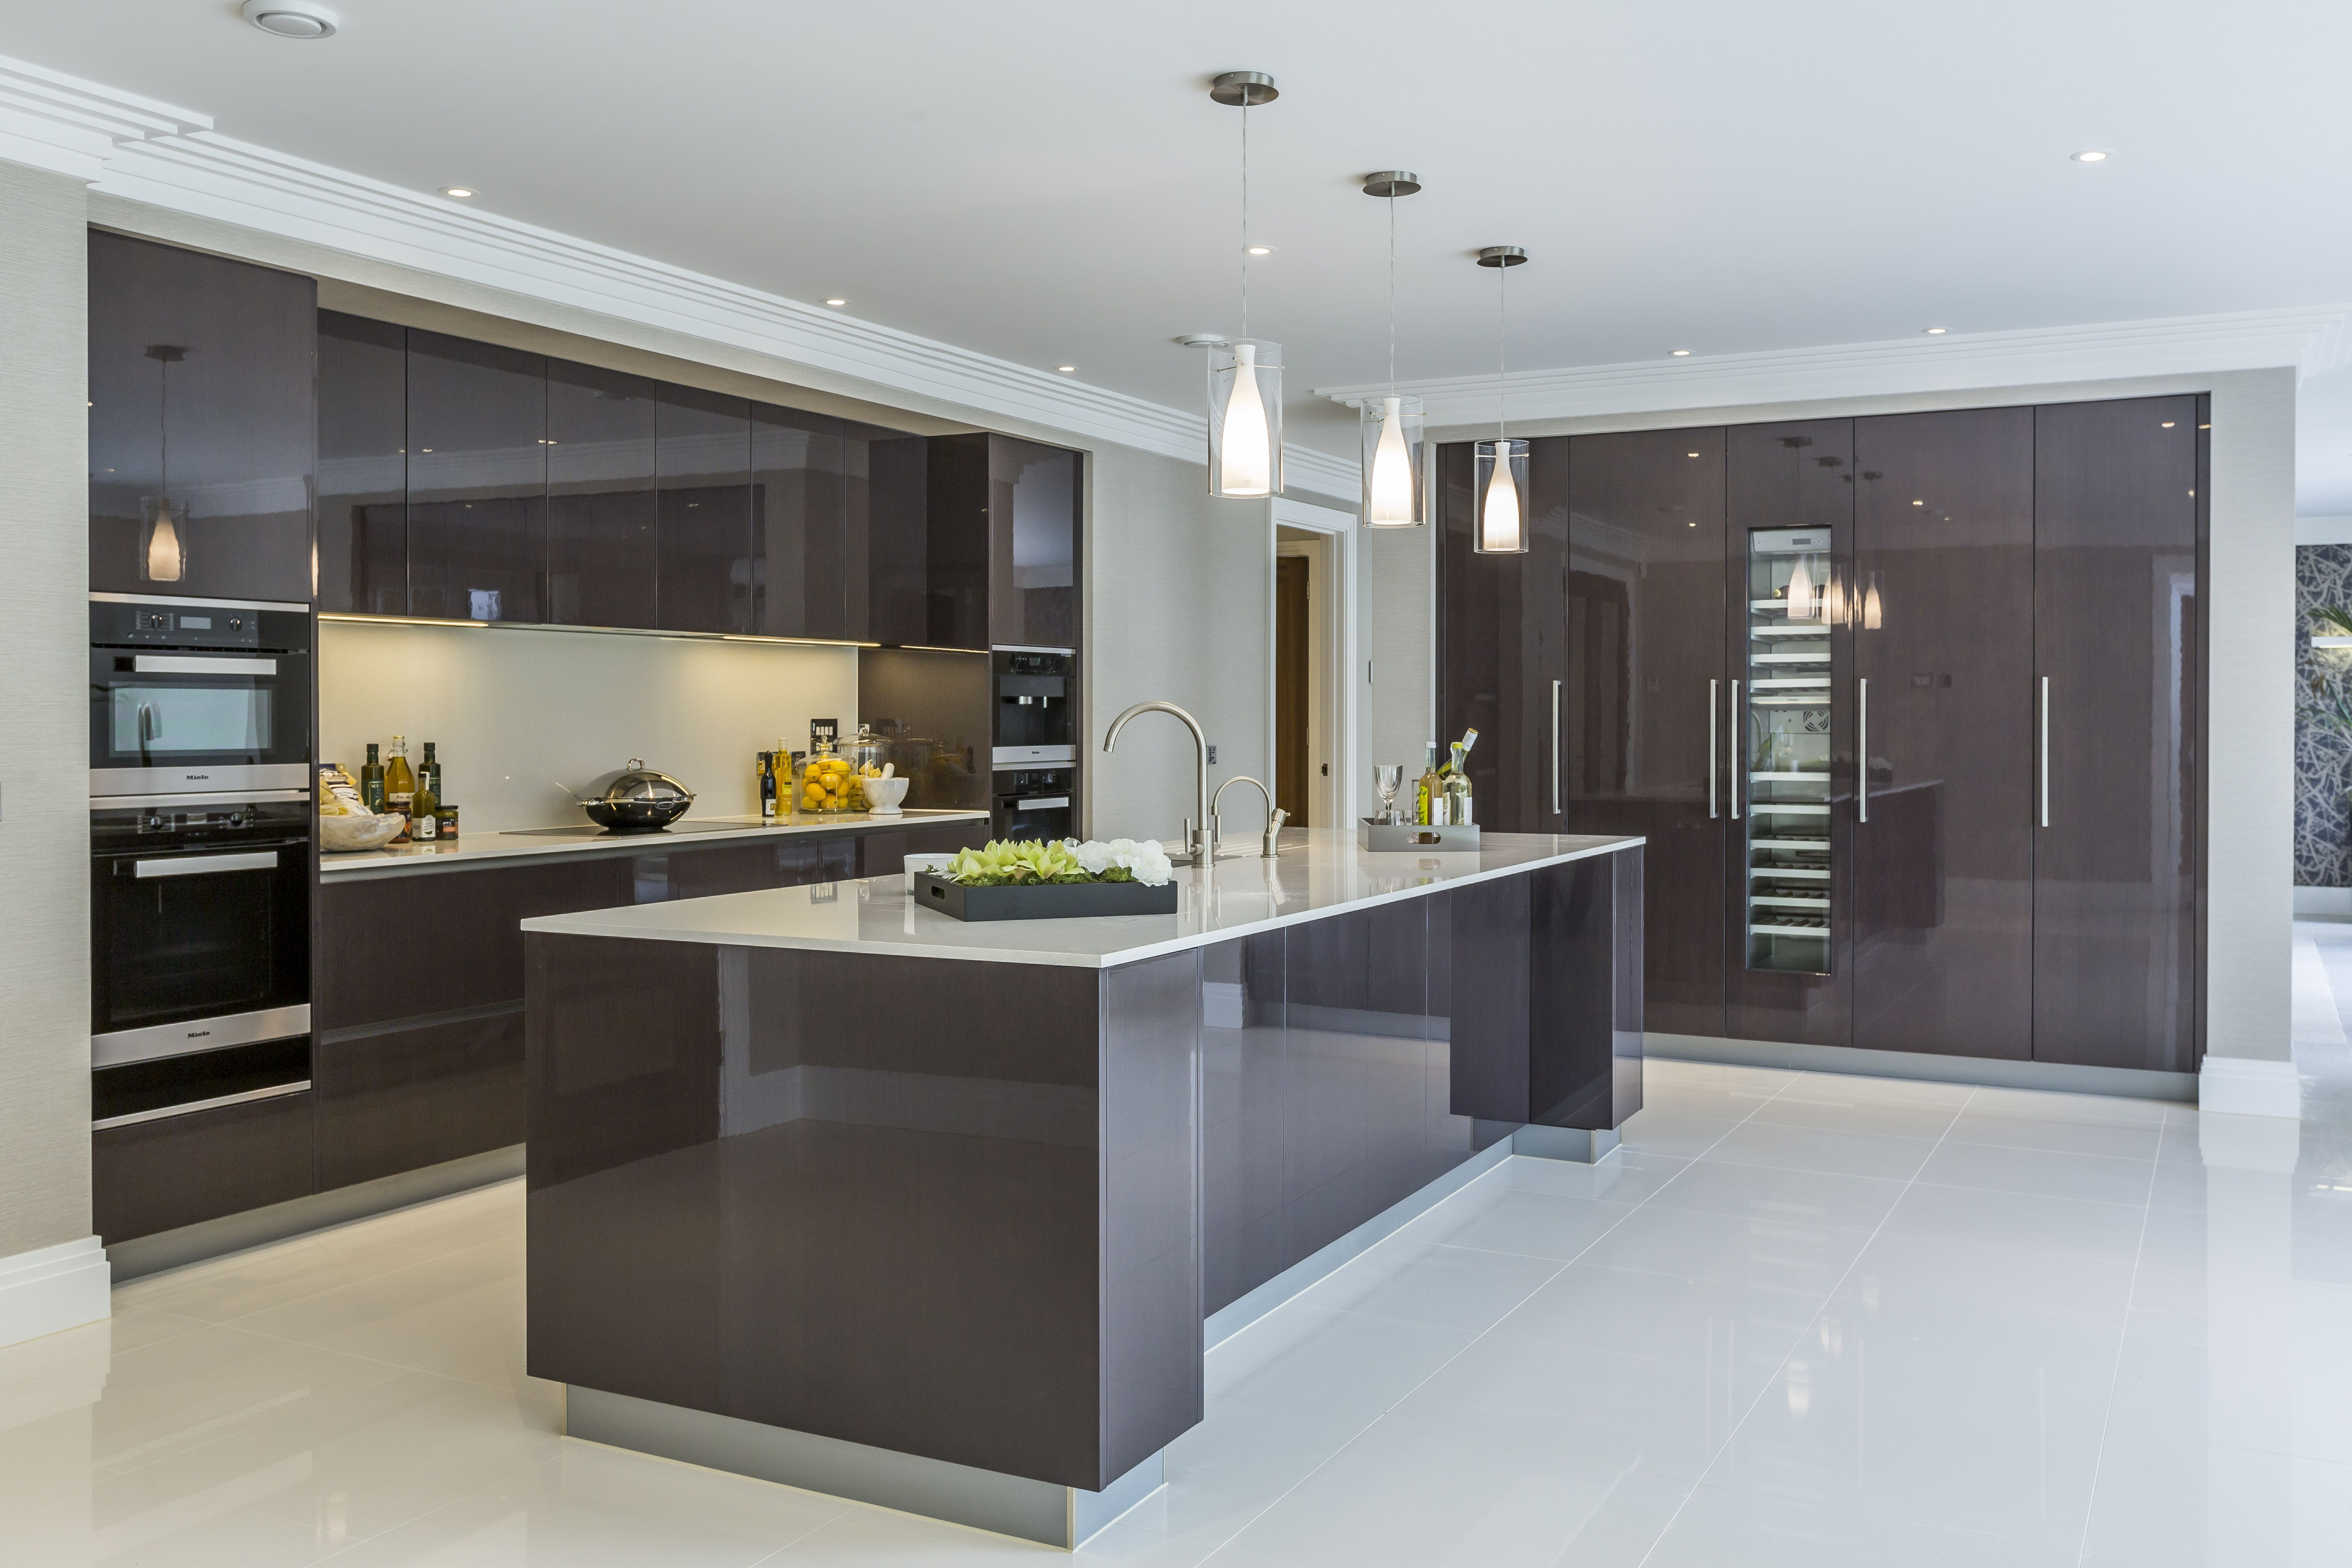 EXTREME Contemporary minimal high gloss kitchen design in private ...